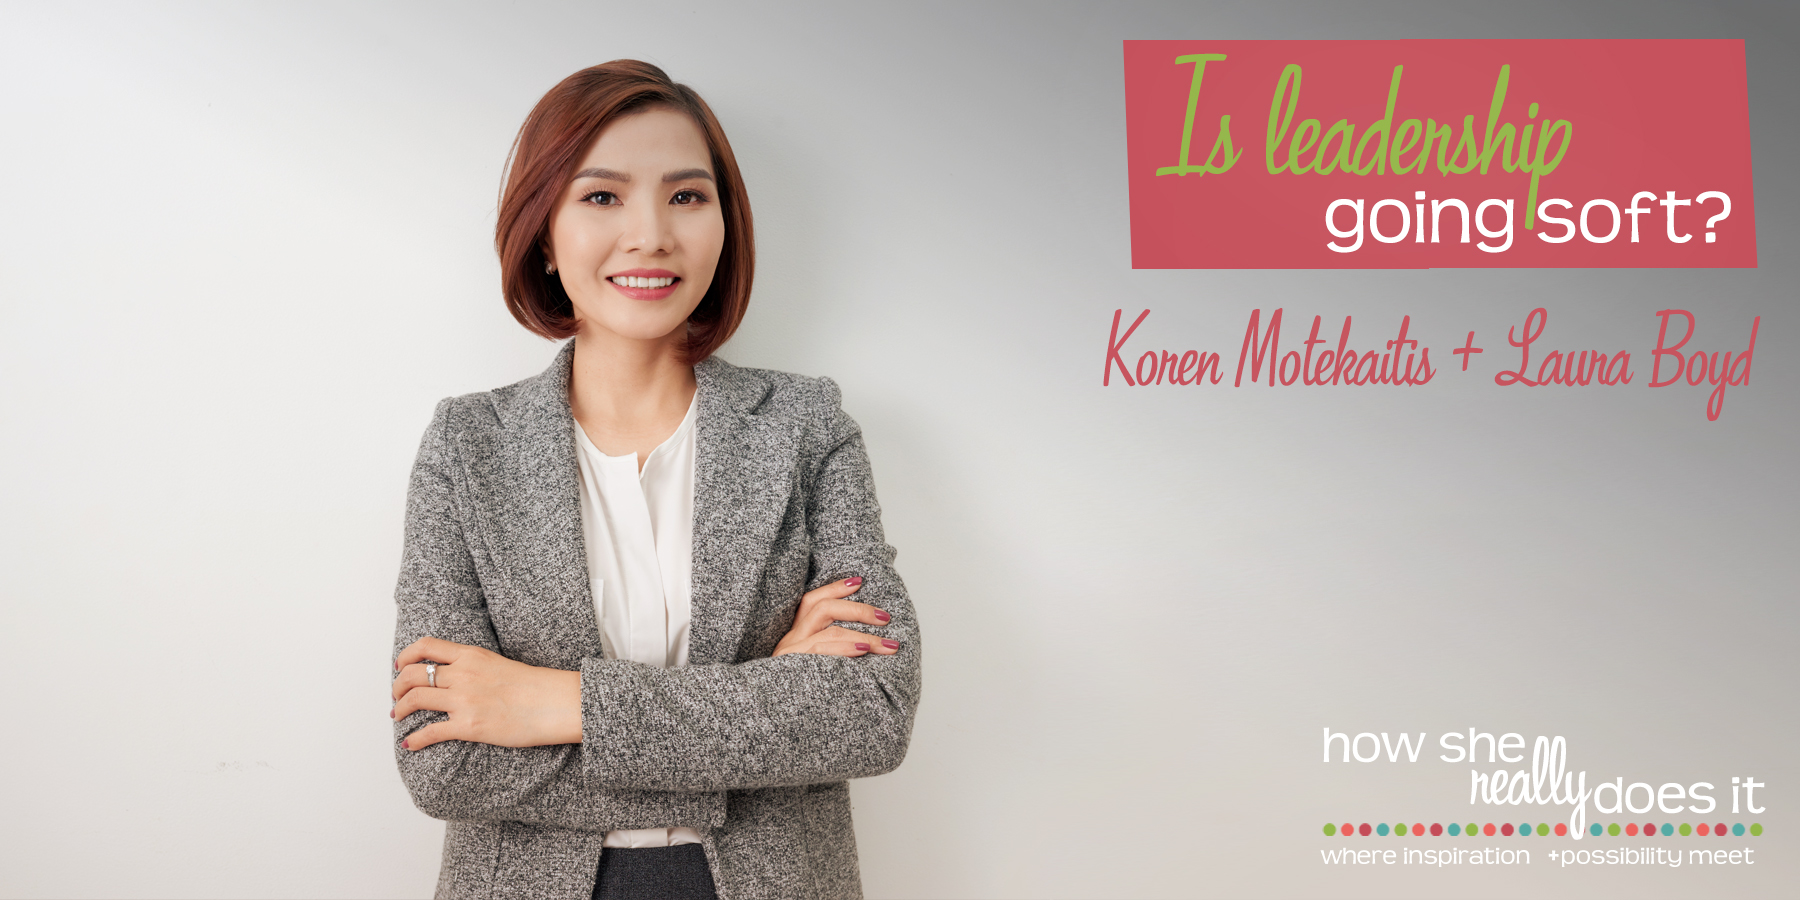 How She Really Does It with Koren Motekaitis   Is leadership going soft?